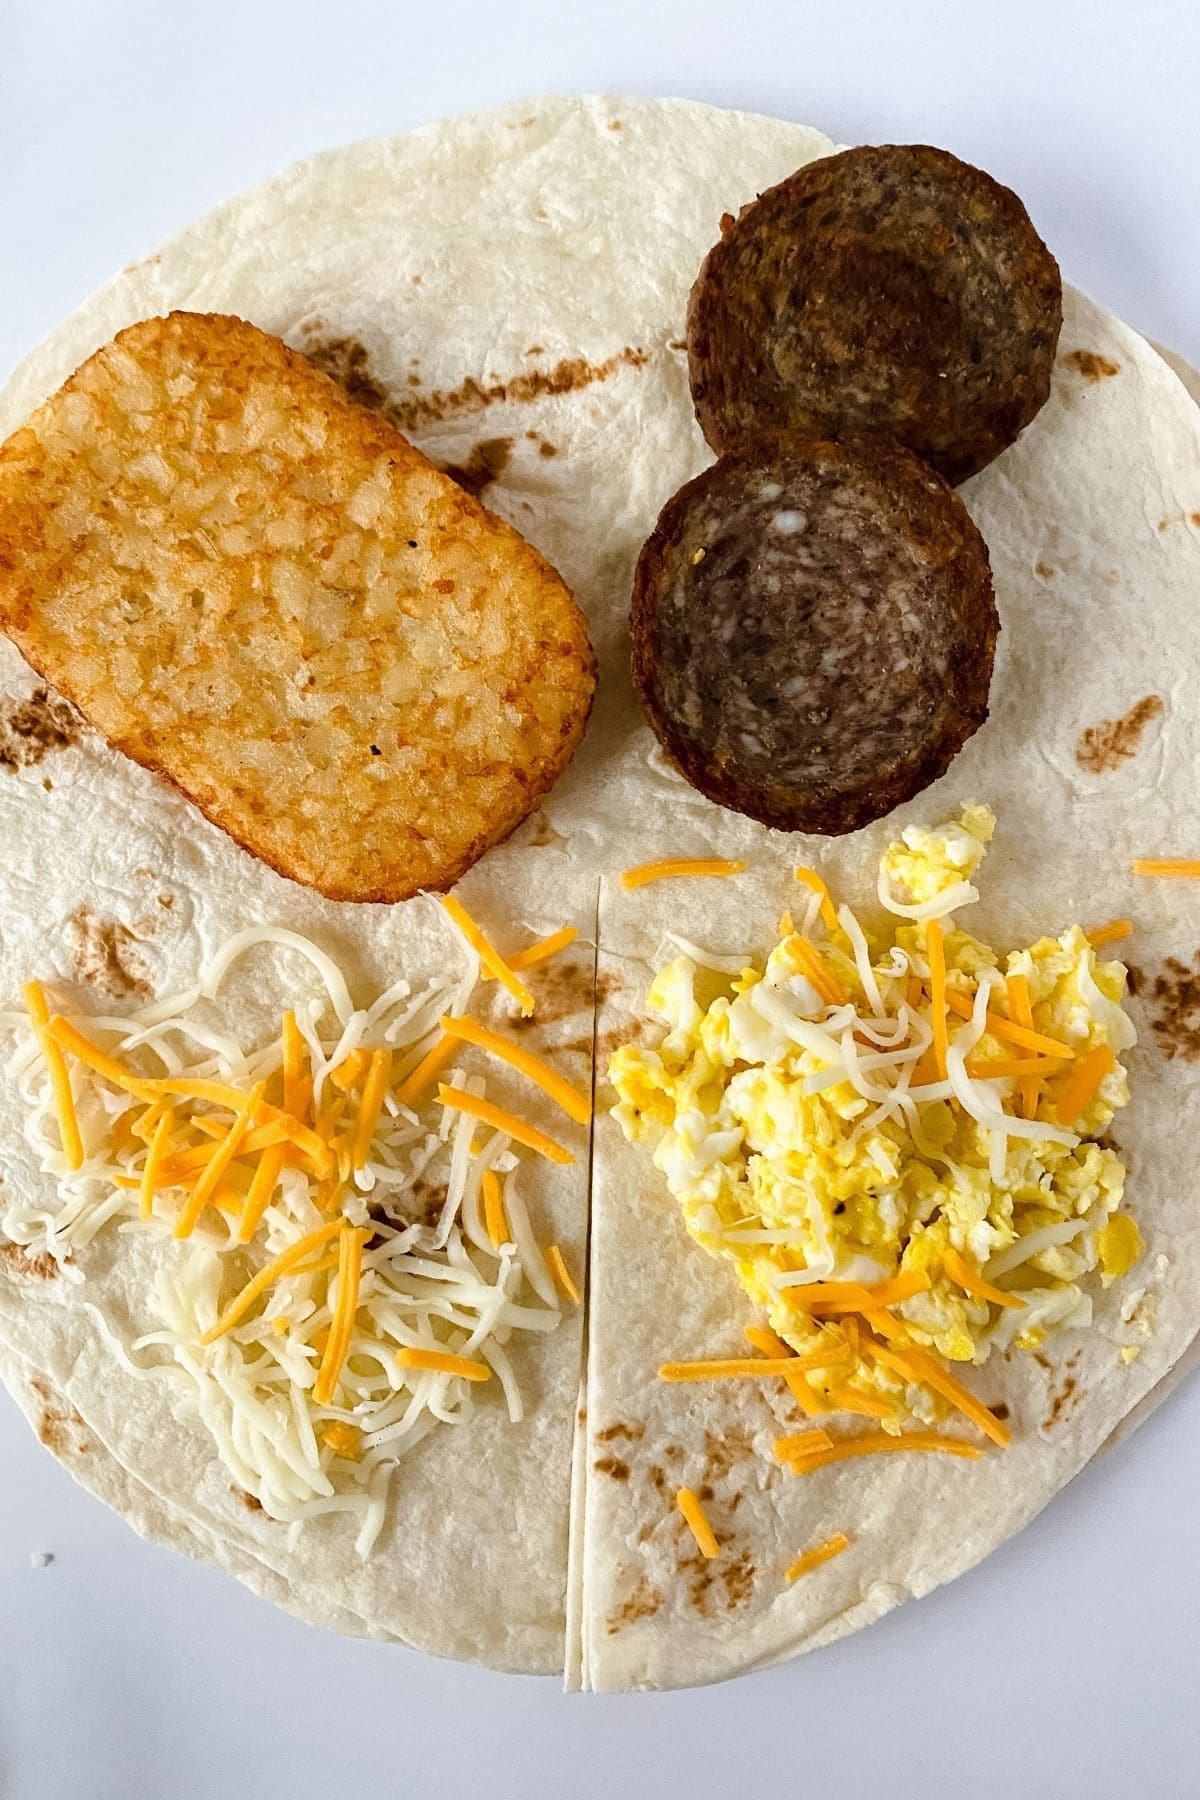 Dividied tortilla with ingredients